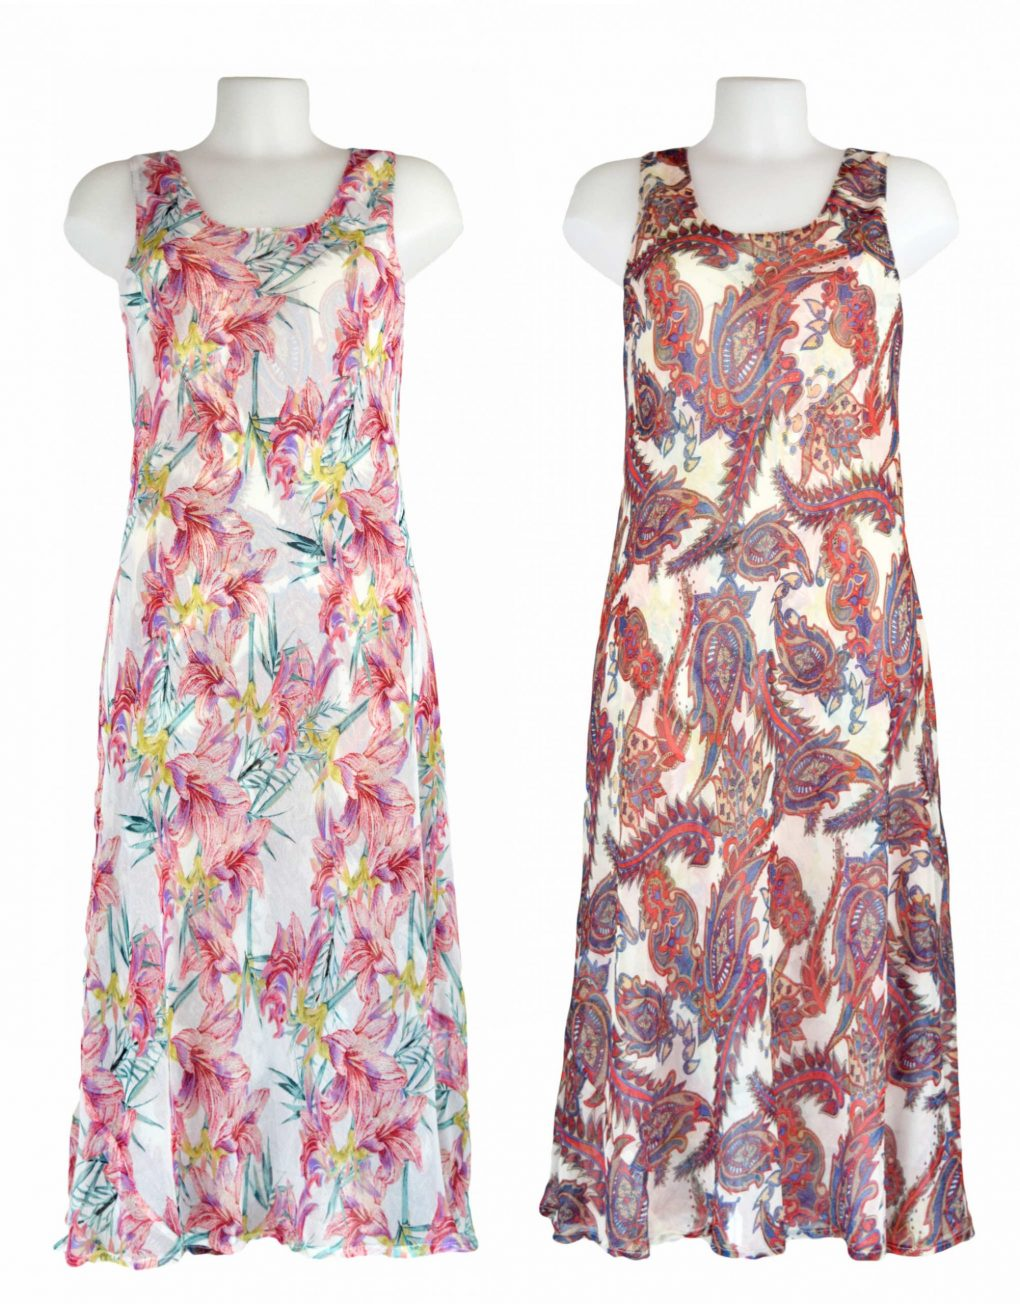 Paramour Reversible 2 in 1 Off White & Pink Floral Dress1